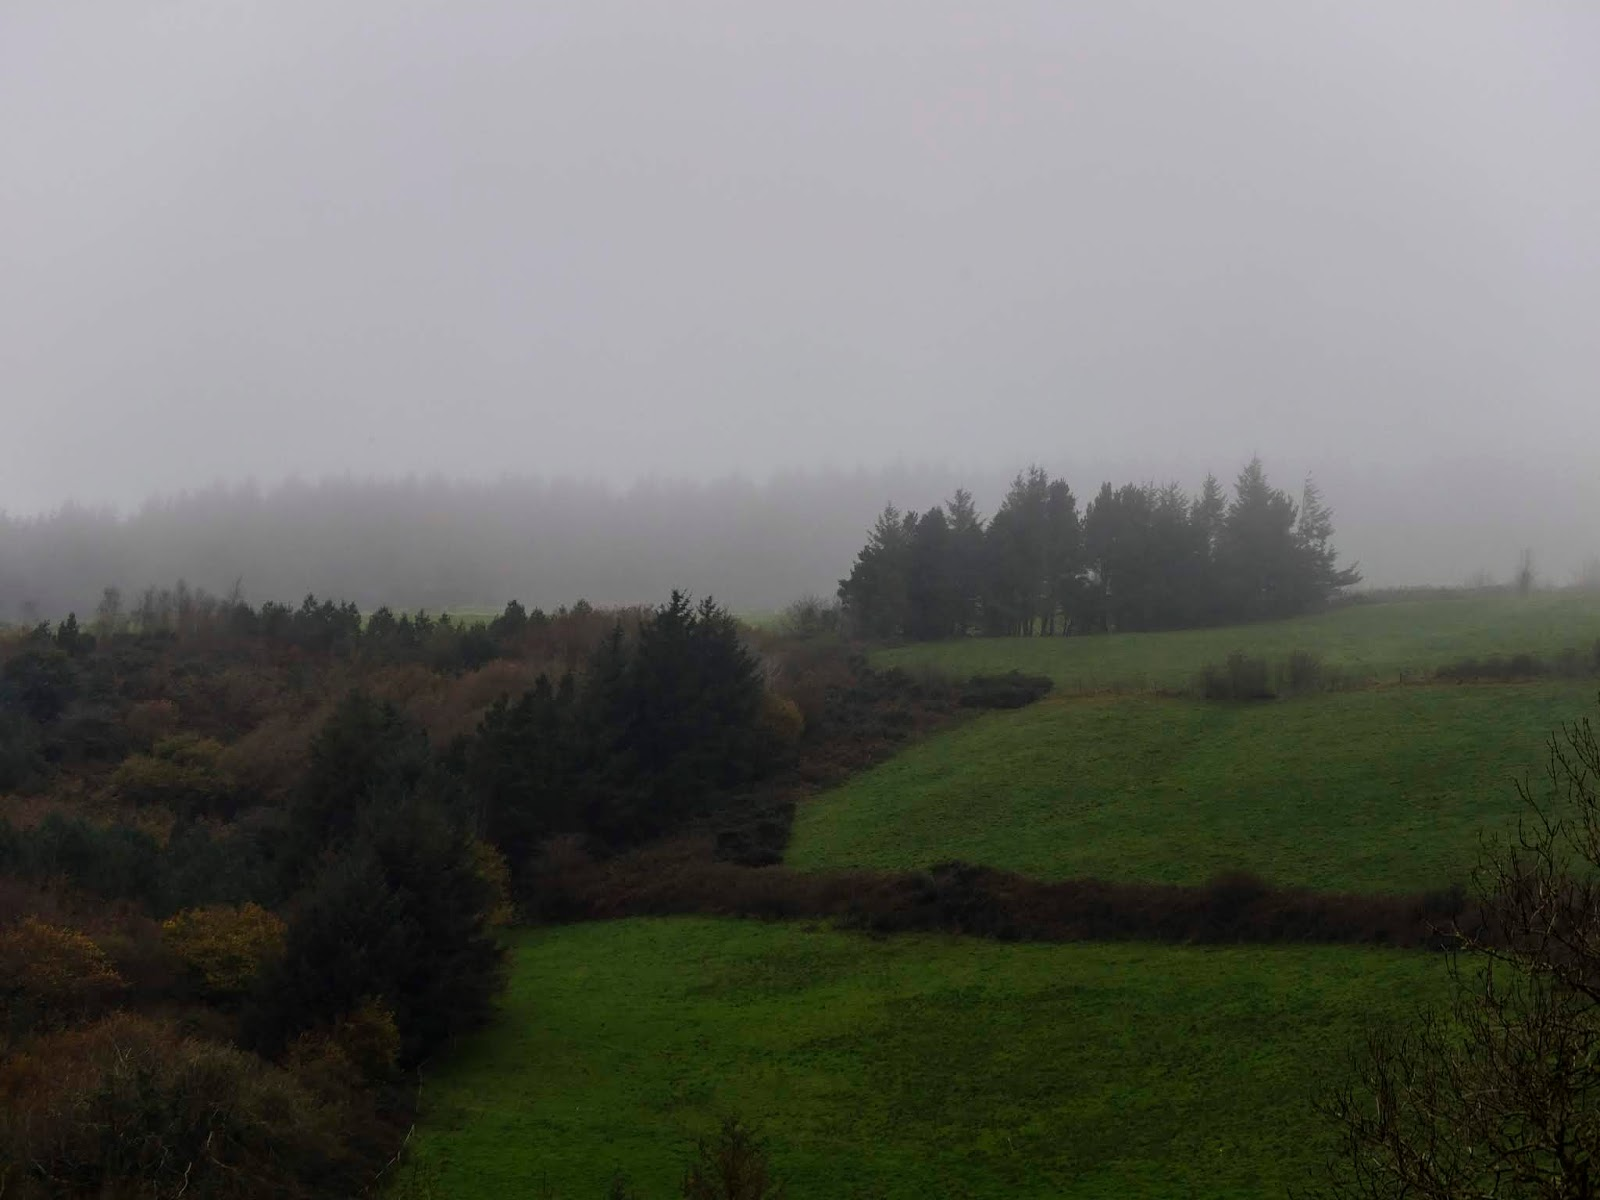 Top of a hill side and forestry in North County Cork covered in fog.